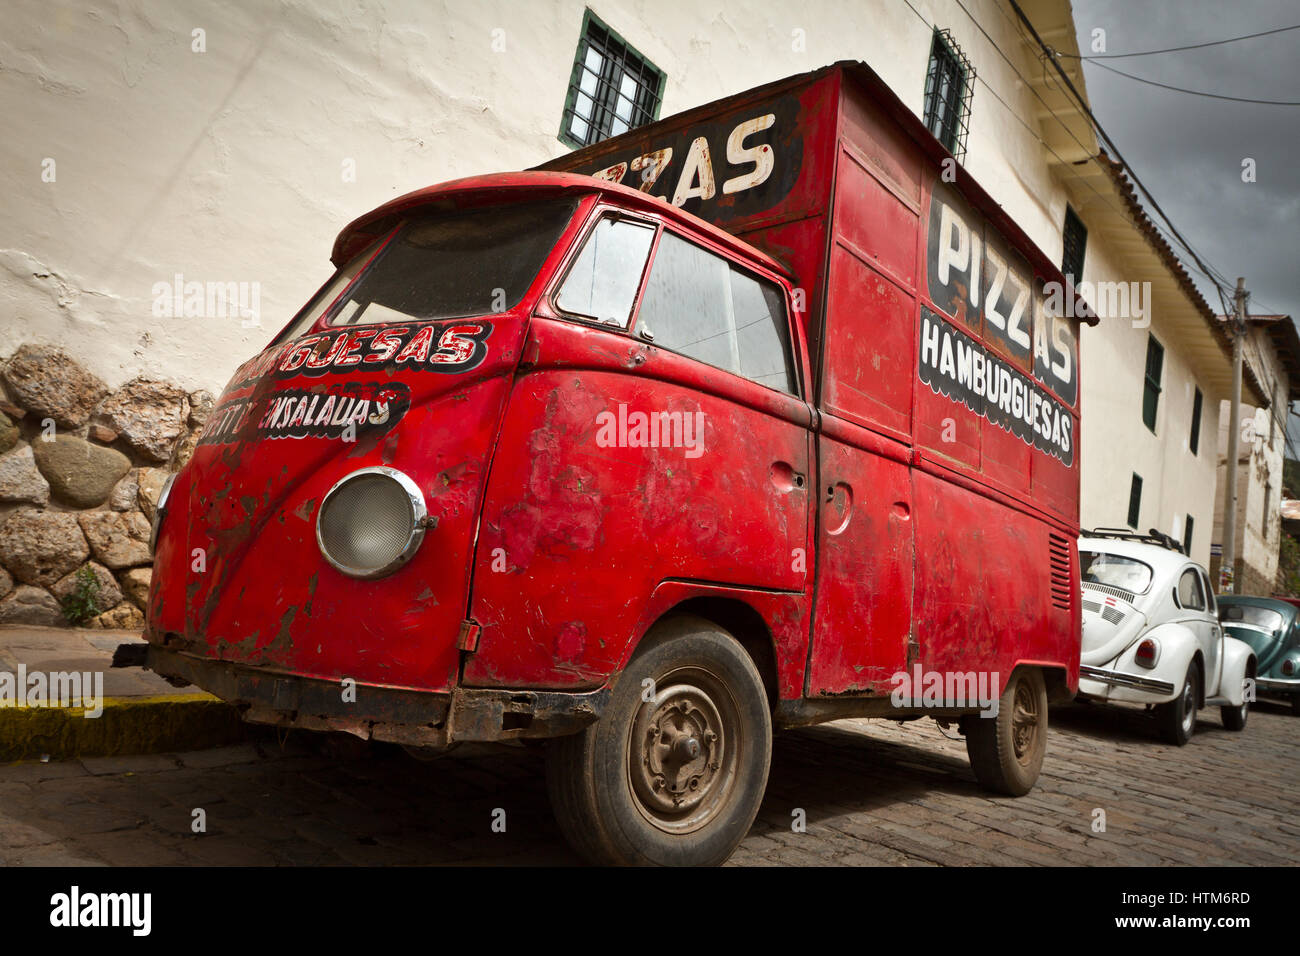 ea300e9453 Old vintage red Pizza van in Cuzco